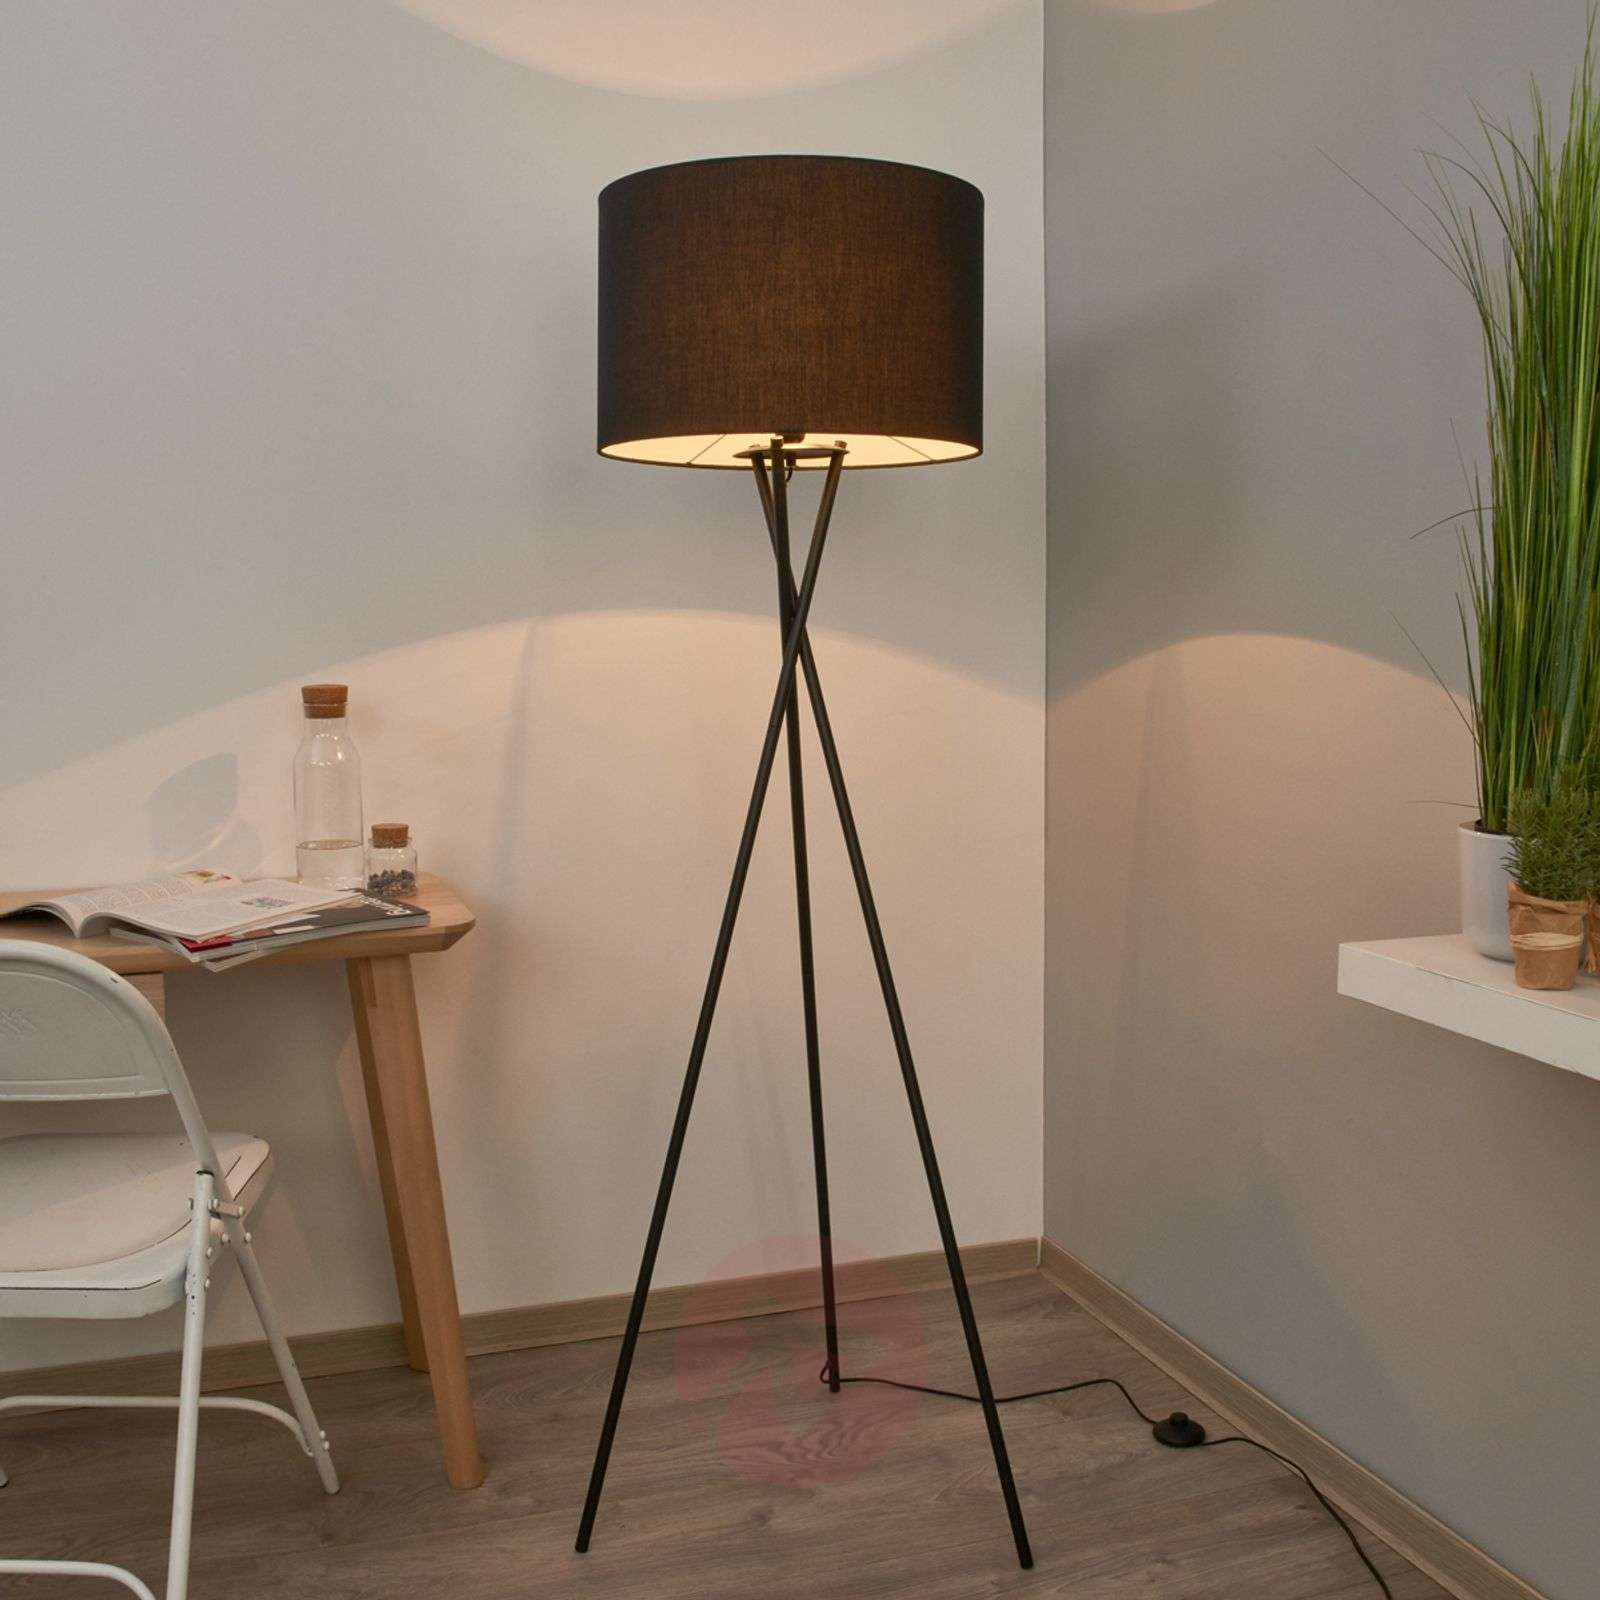 Fiby fabric floor lamp with black shade-4018035-02